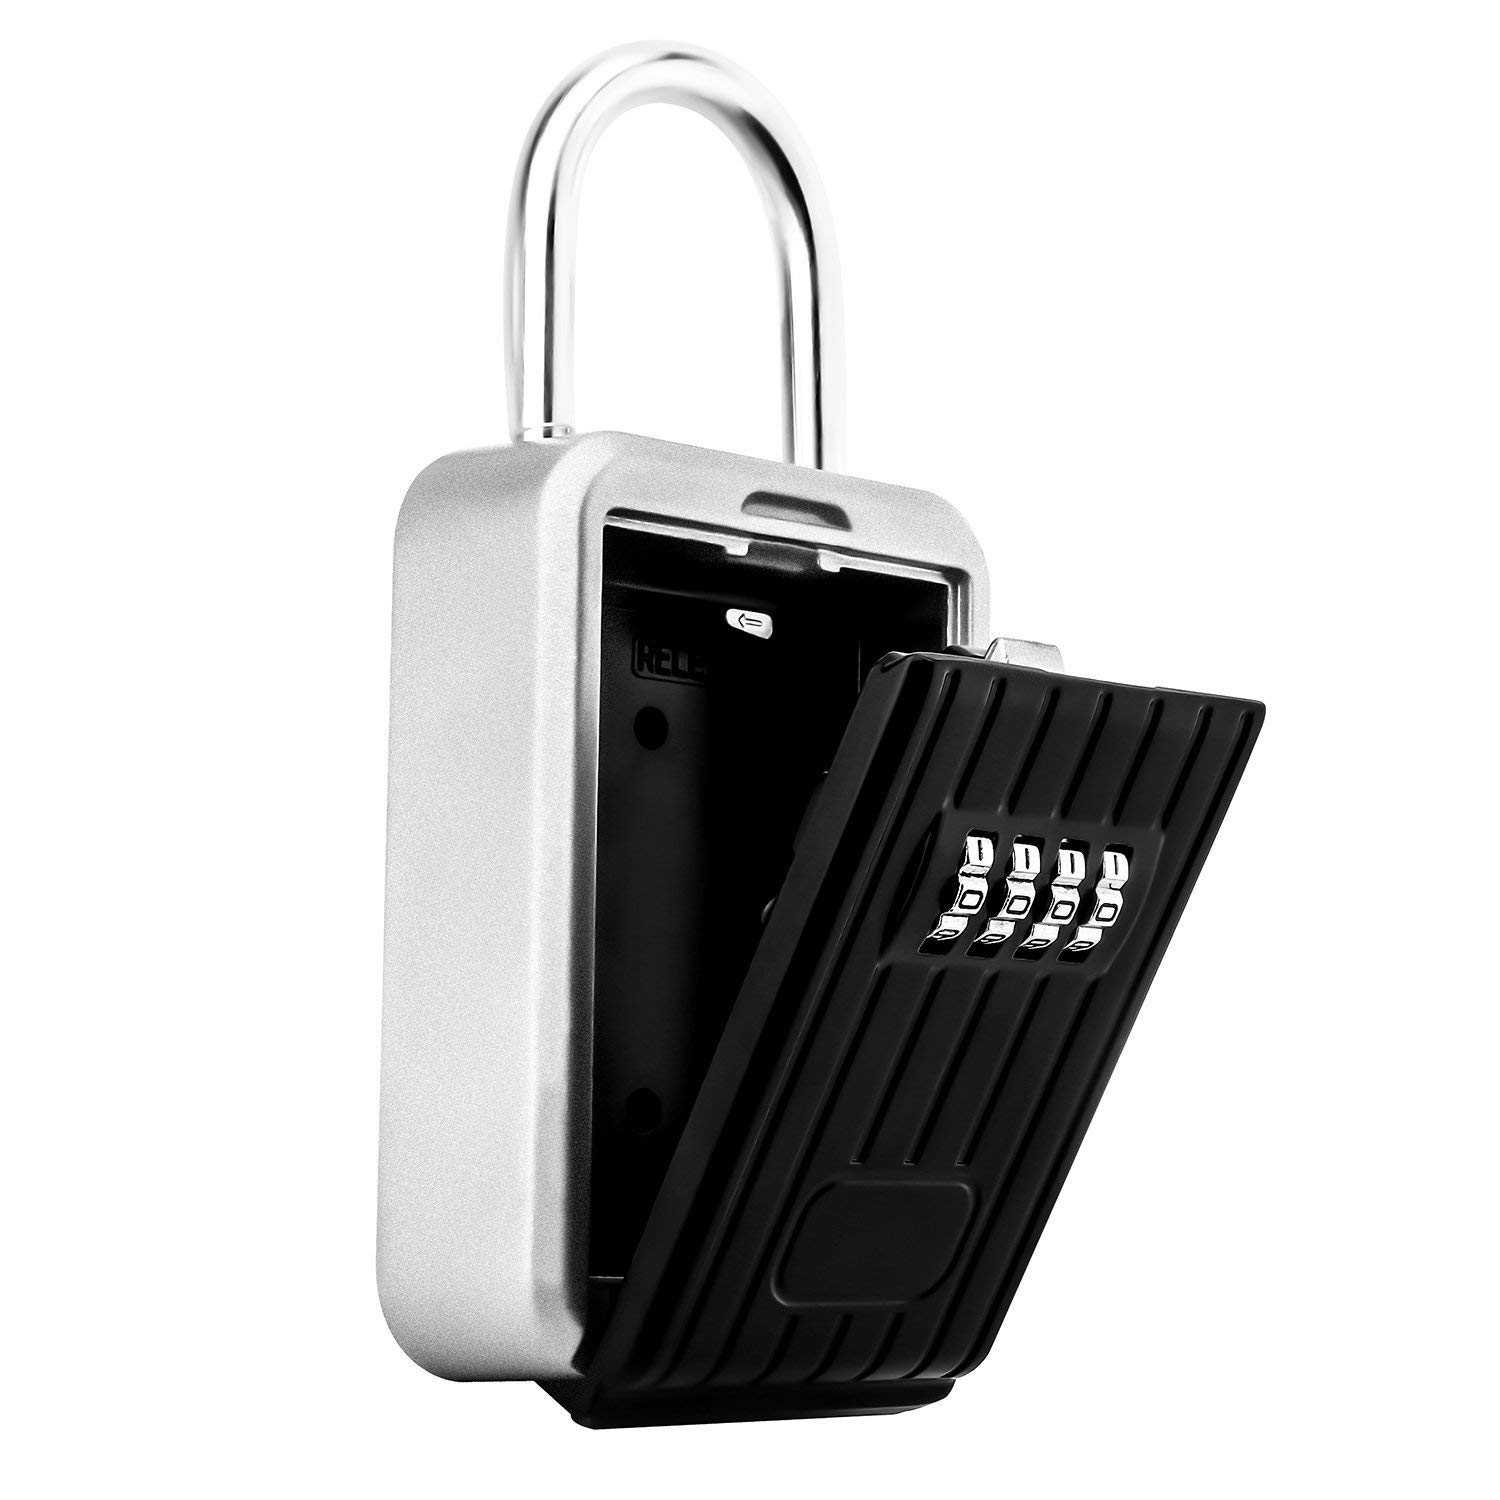 Portable Key Lock Box Secure Key Holder Durable Aluminium Alloy Material with 4 Digit Combination Waterproof Realtor Lock Box